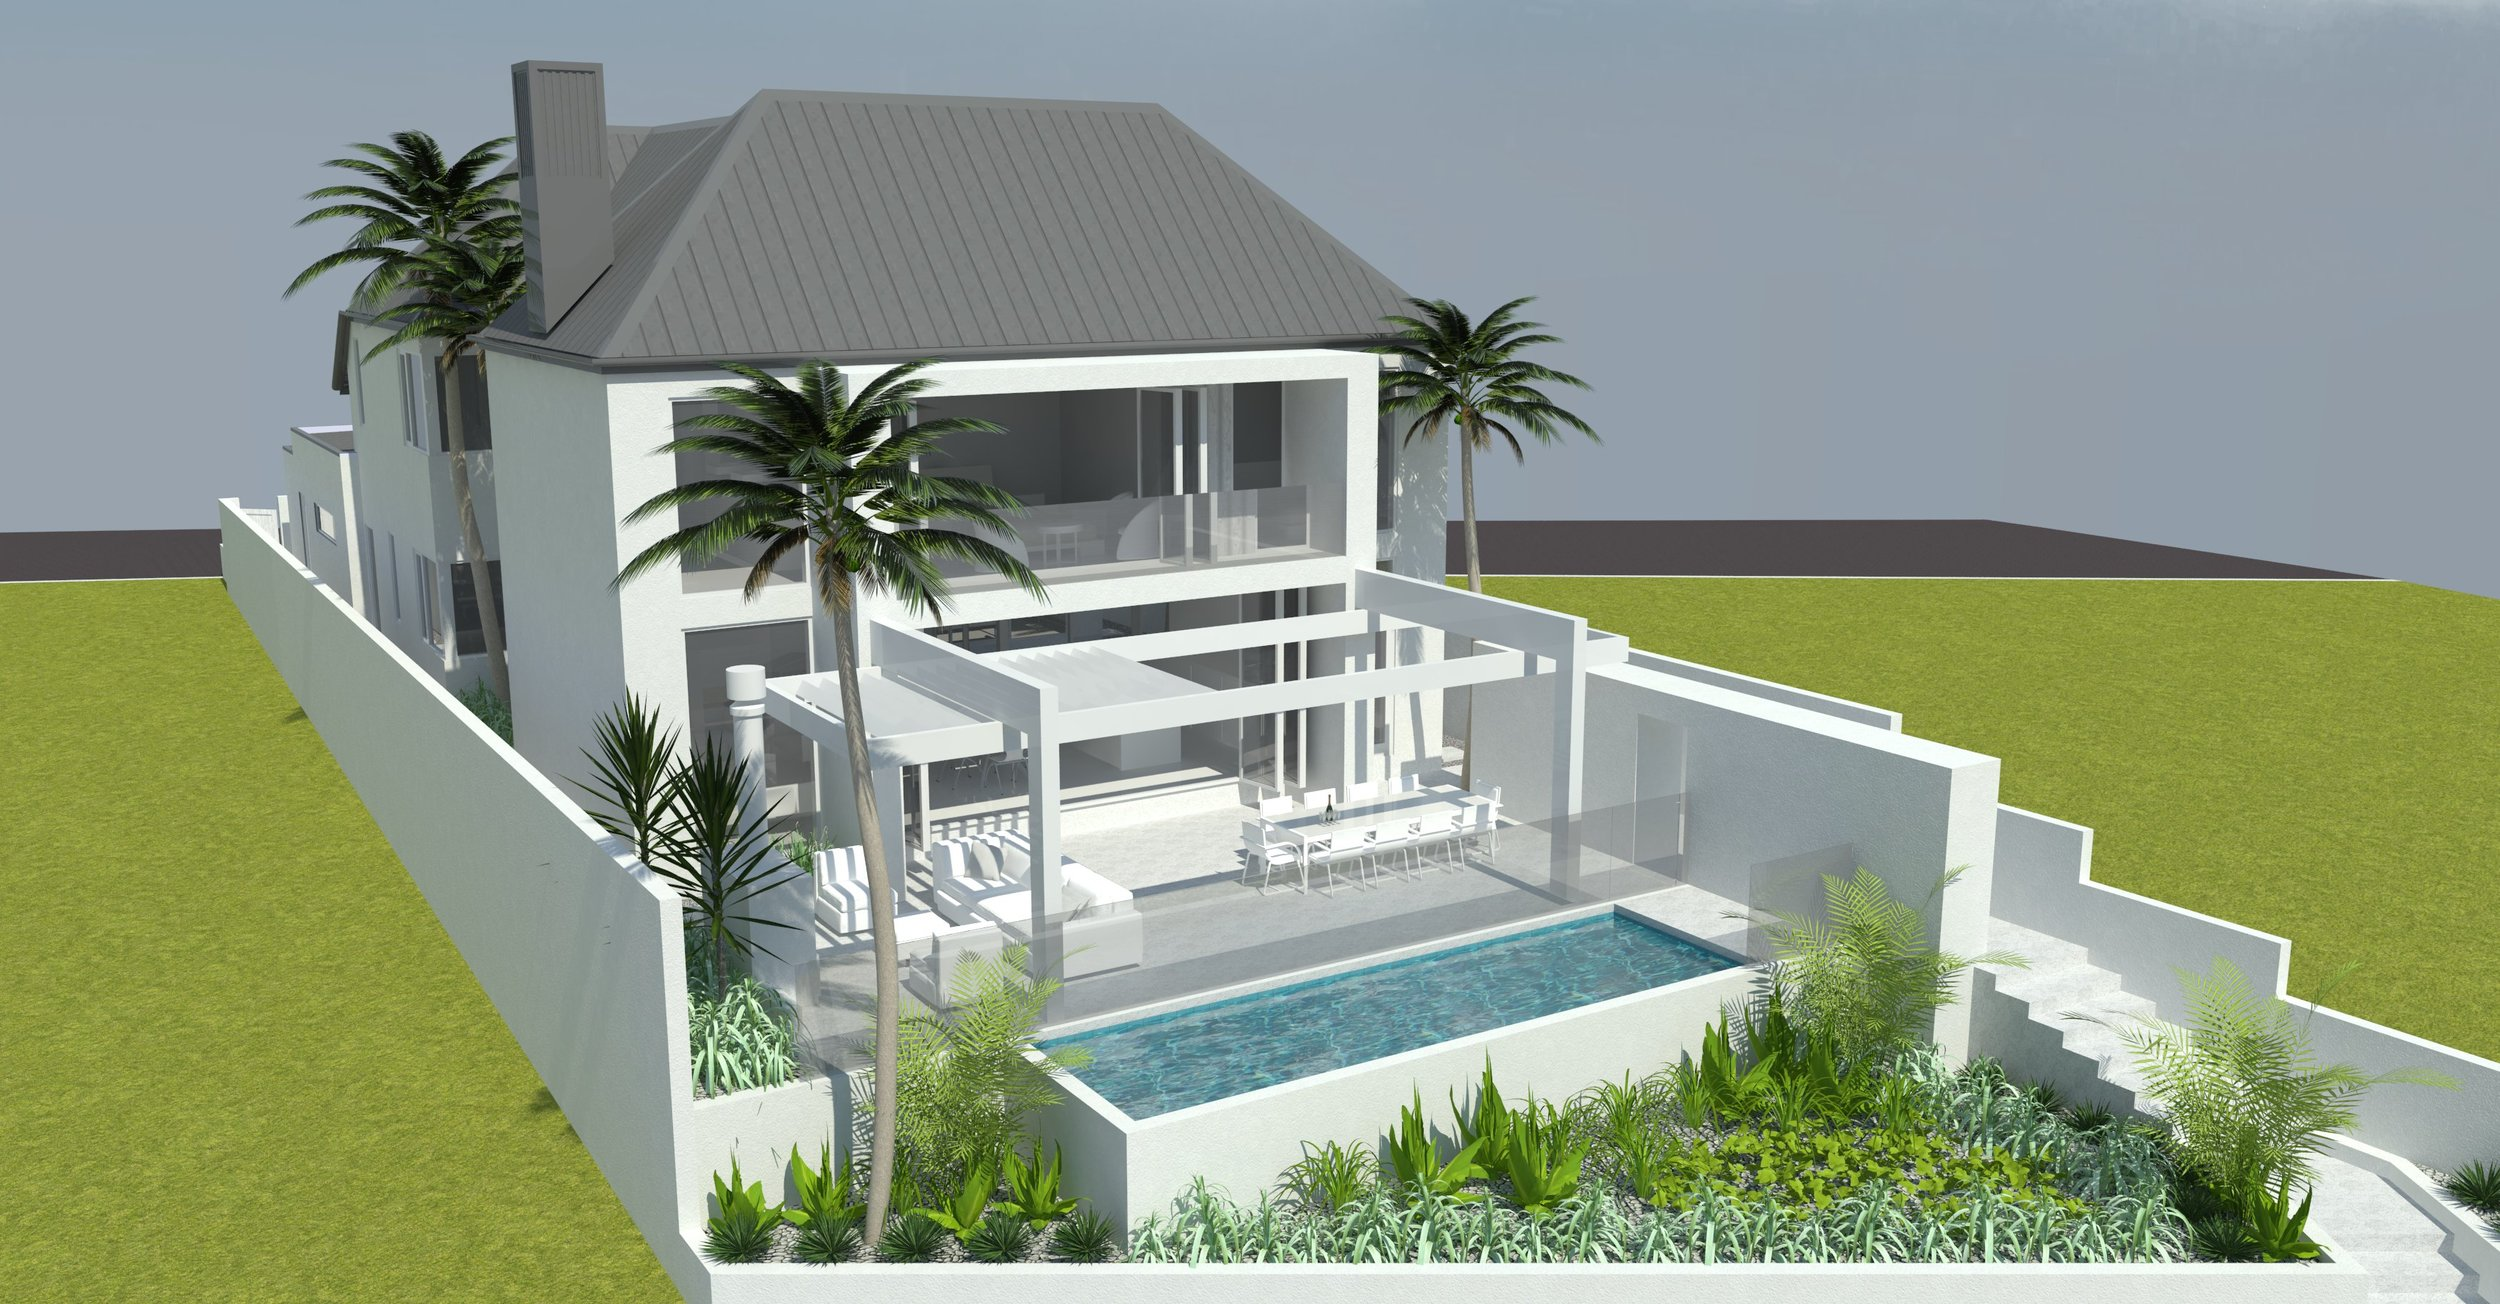 170121 Gulf Harbour - Elevated Rear View 1_rev 2.jpg